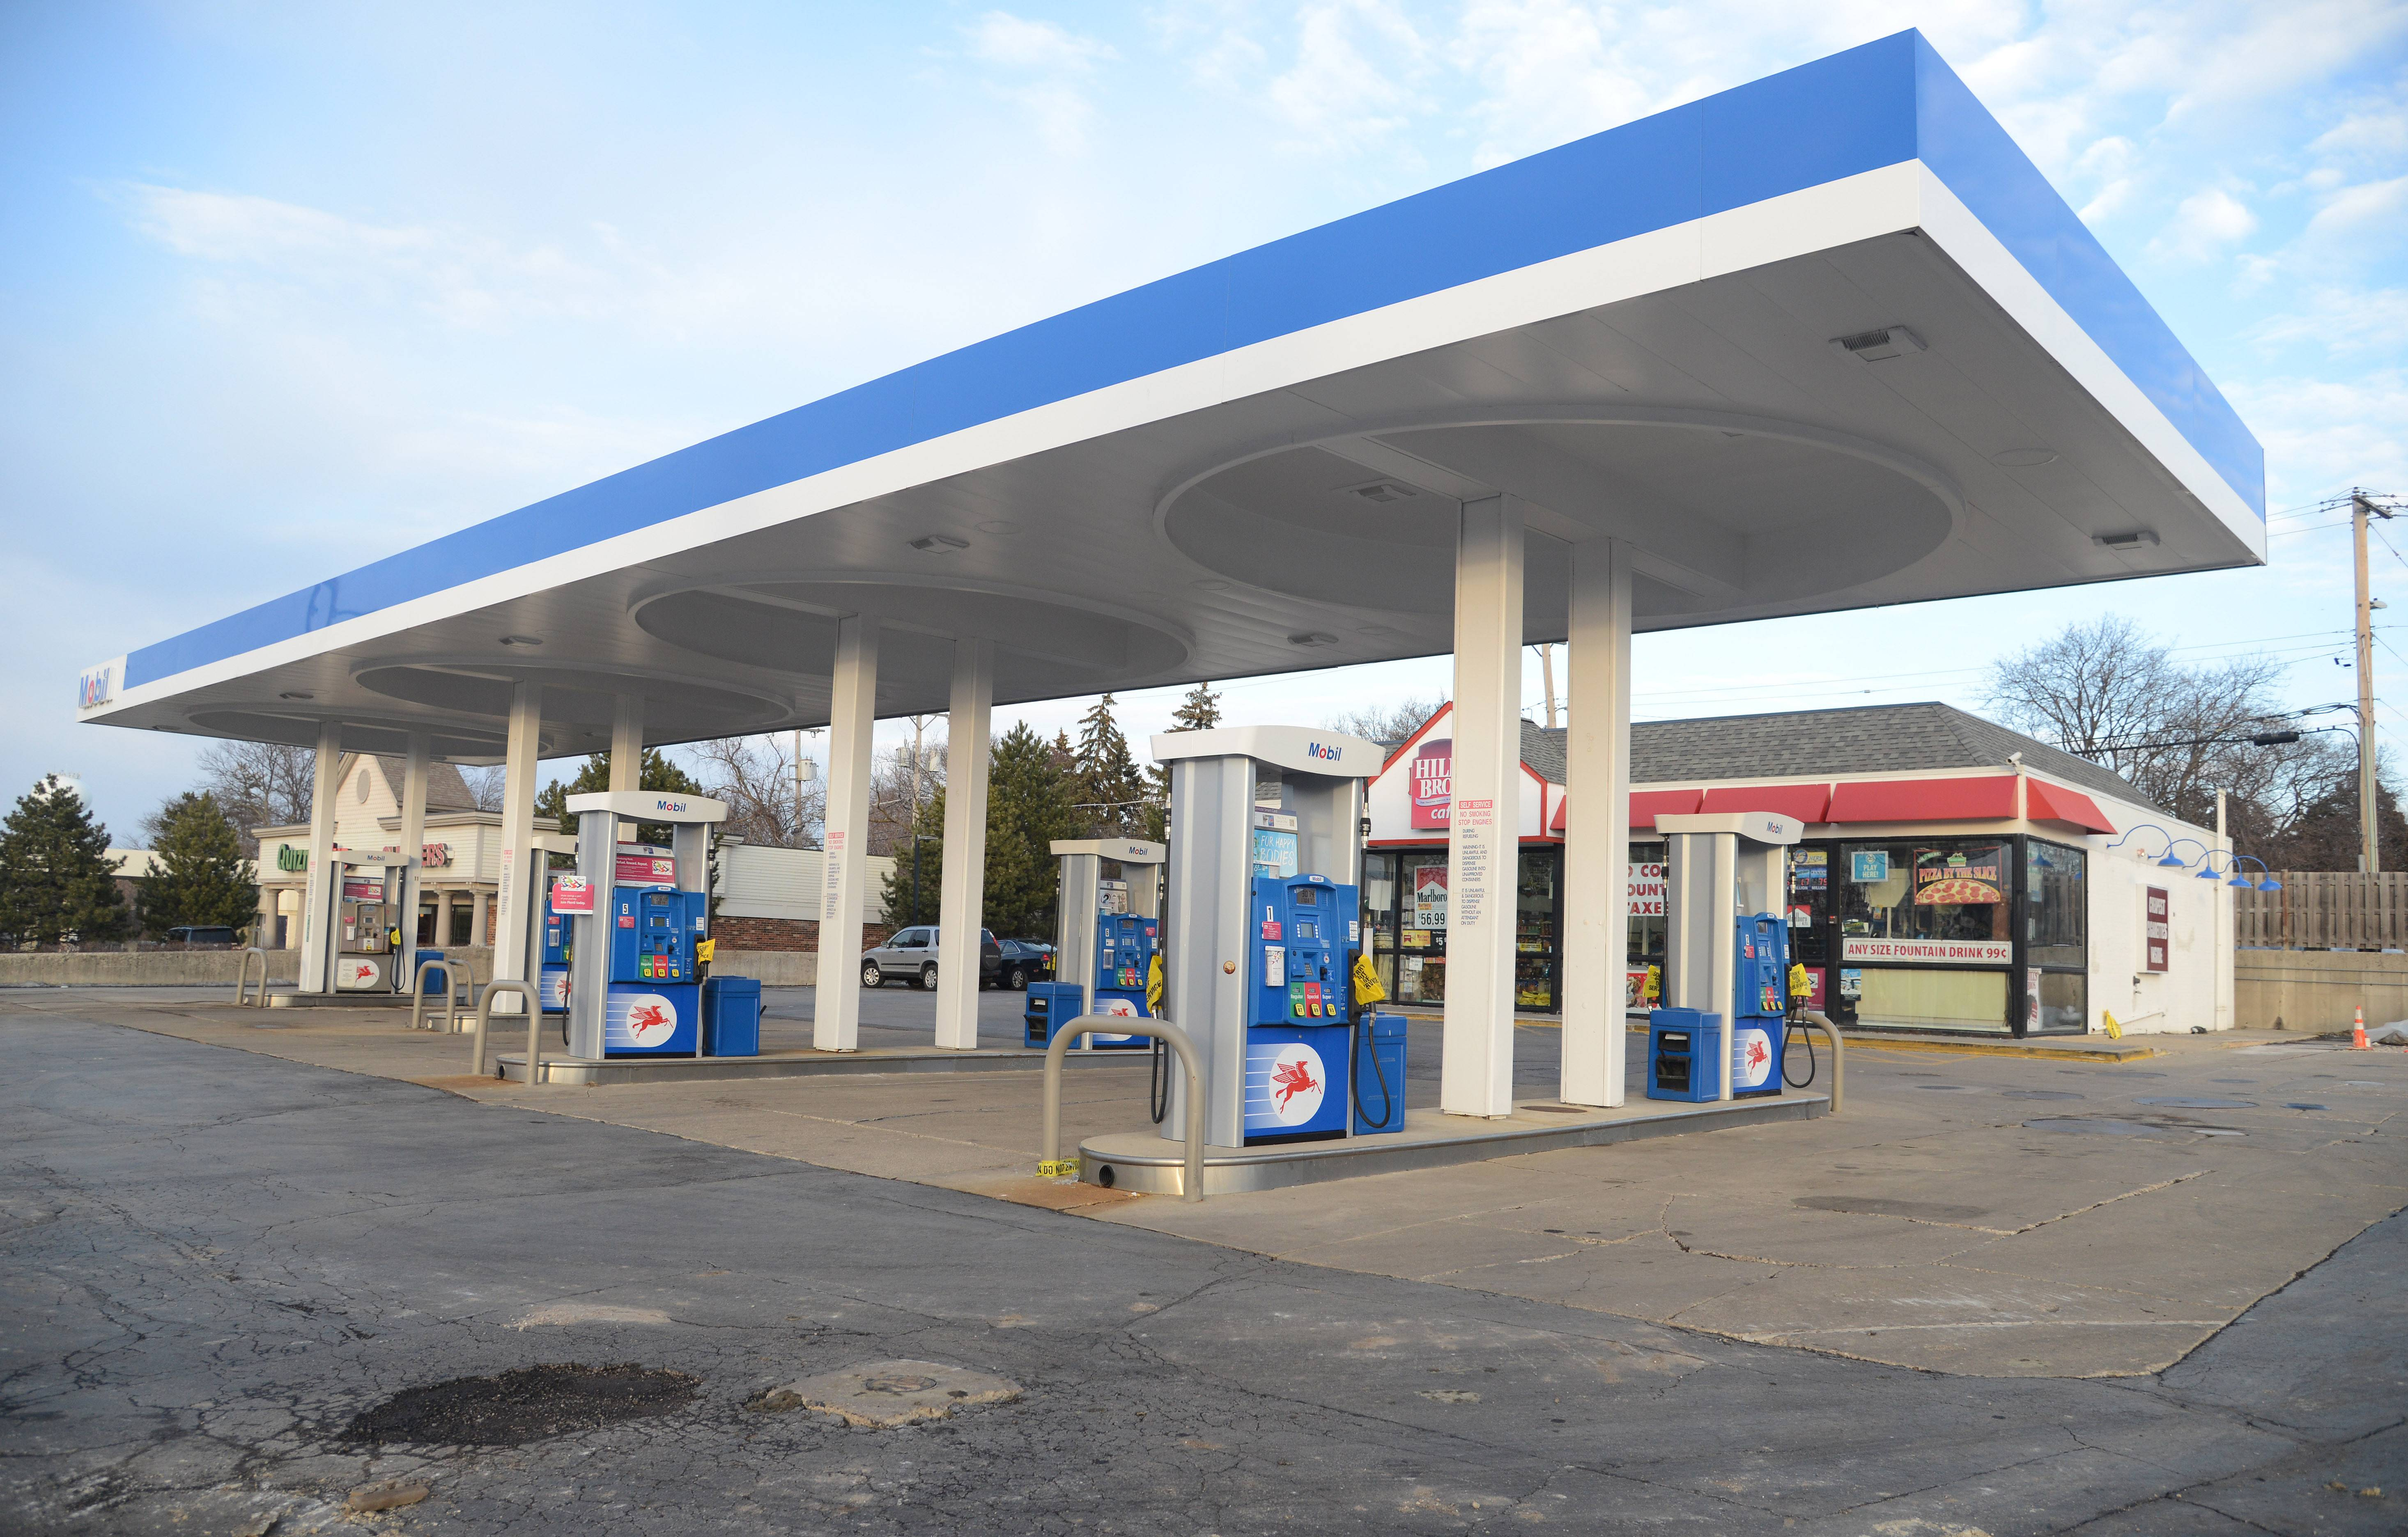 Barrington Mobil that leaked fuel cleared to reopen